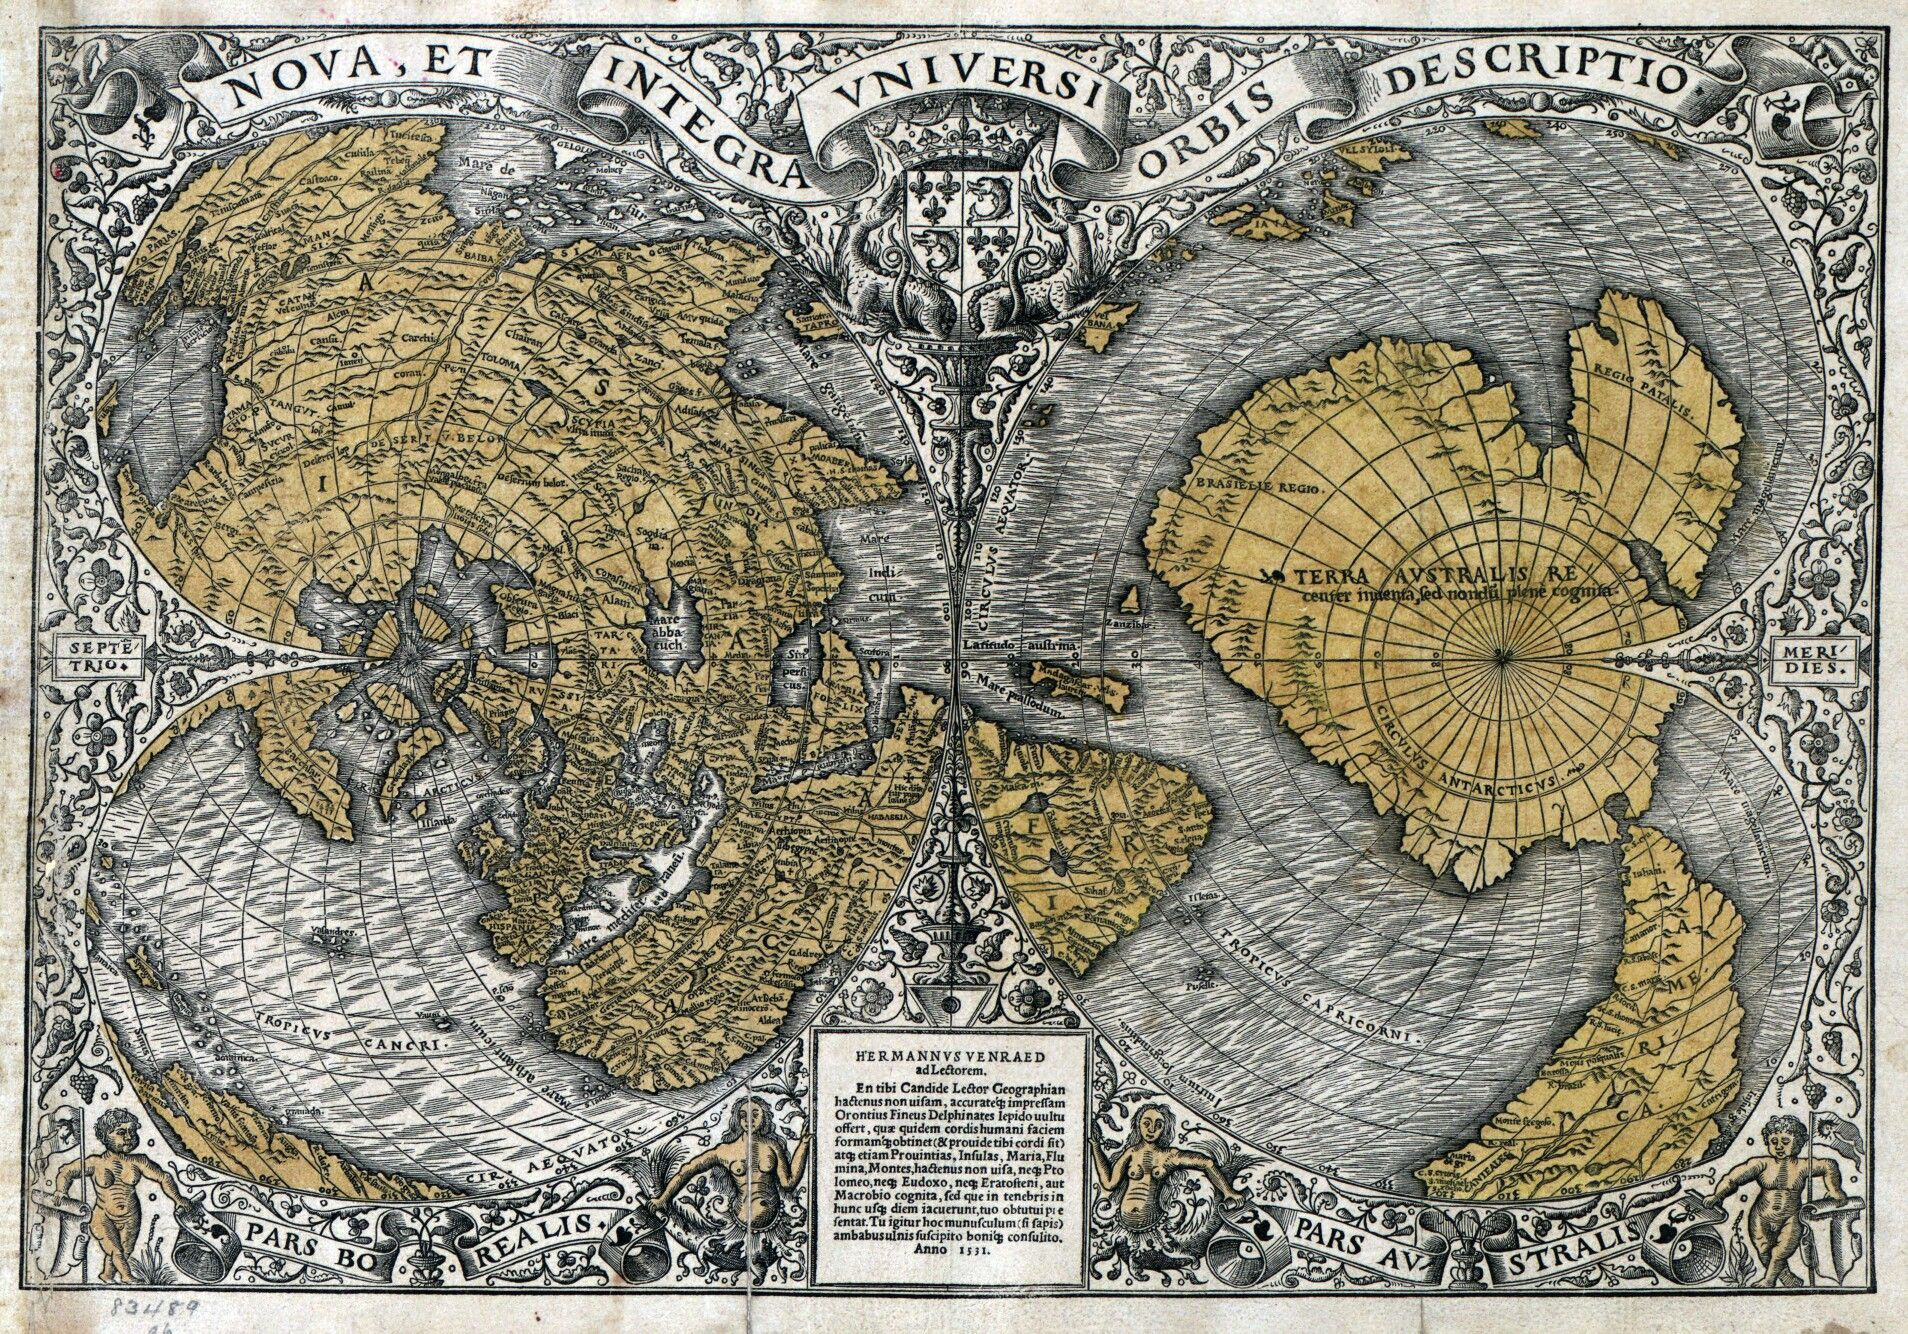 The Orontius Finaeus map was found in